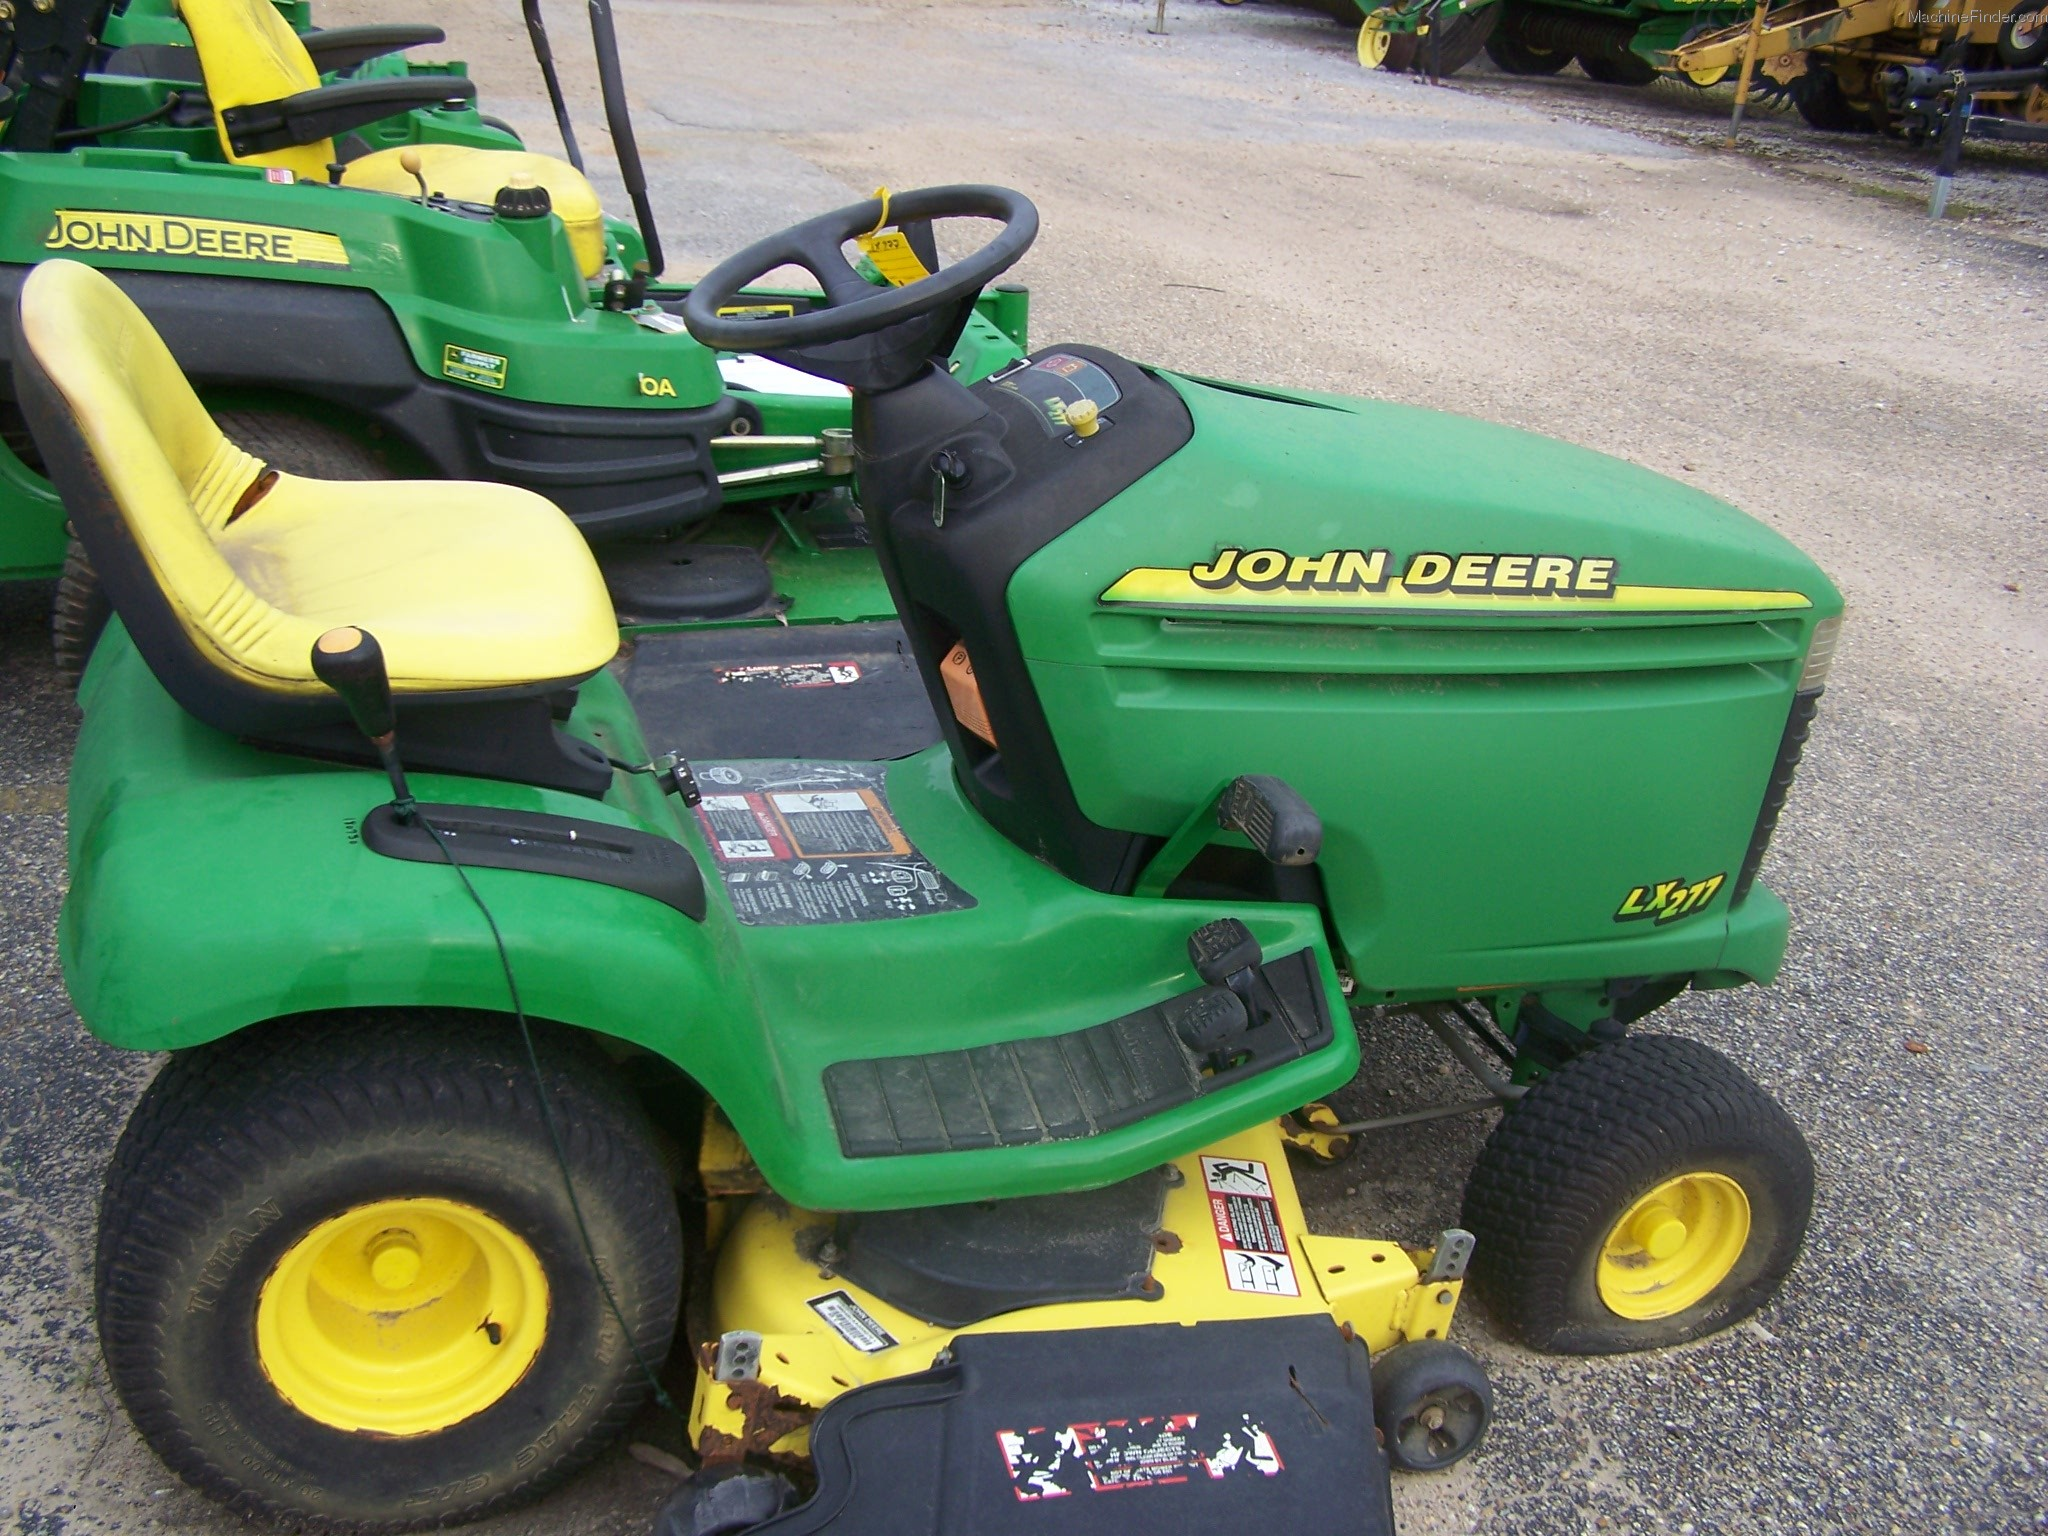 John deere stock options